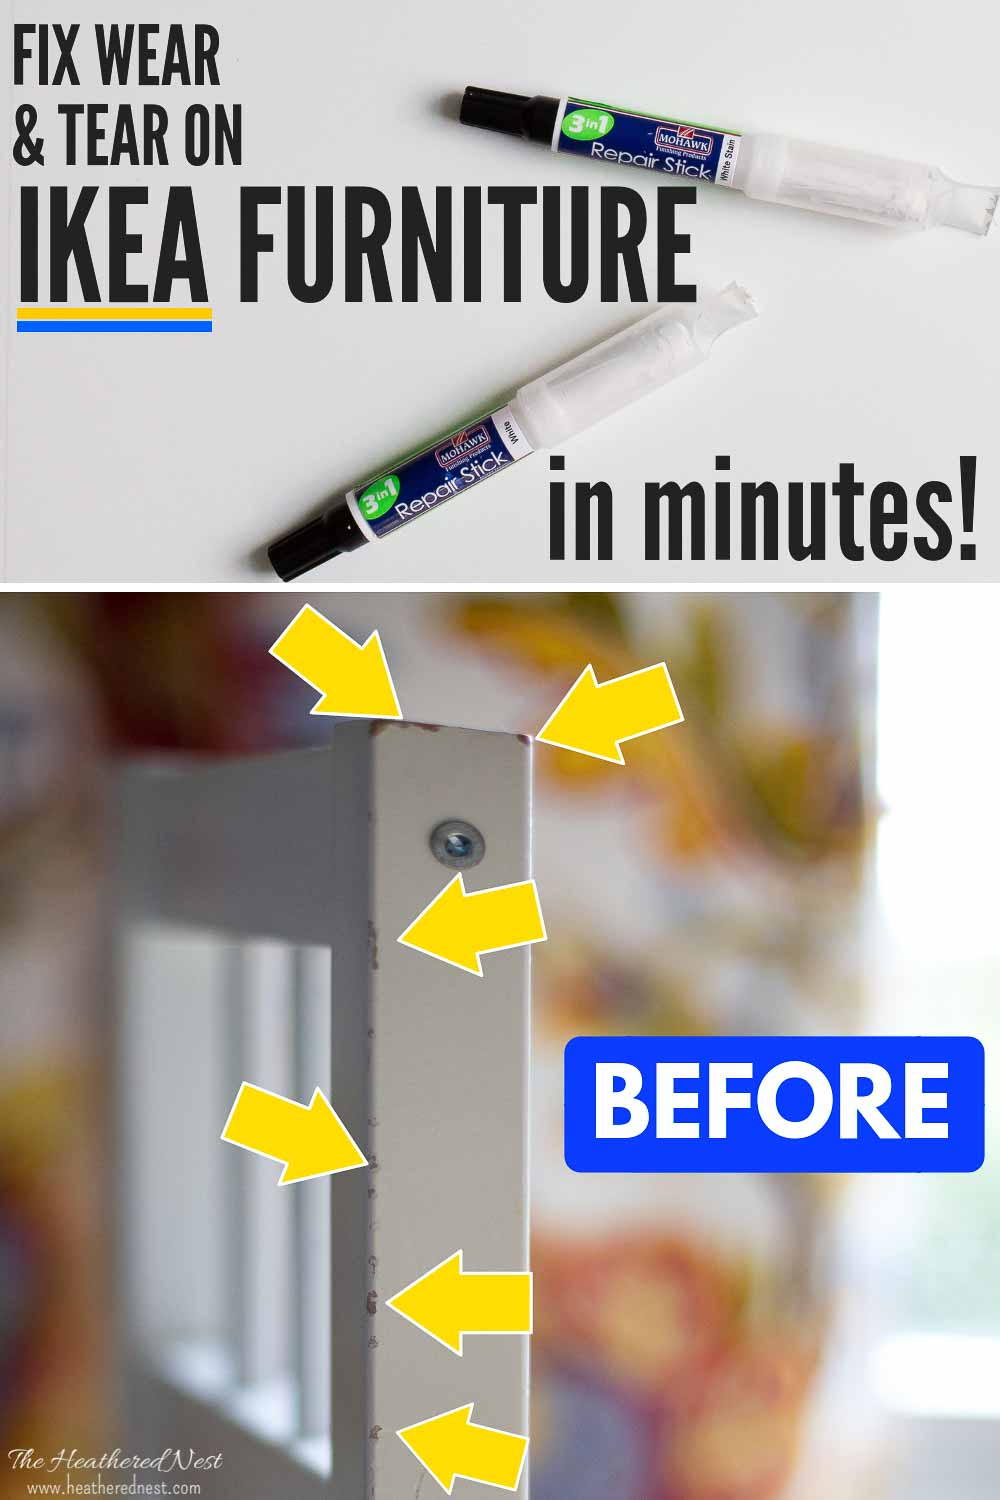 Repair IKEA Furniture Wear & Tear in MINUTES Thanks to this new DIY Repair Stick from Mohawk! This Product is Made Specifically to Match IKEA Furniture Paint and Finishes! It was SUPER EASY to use!